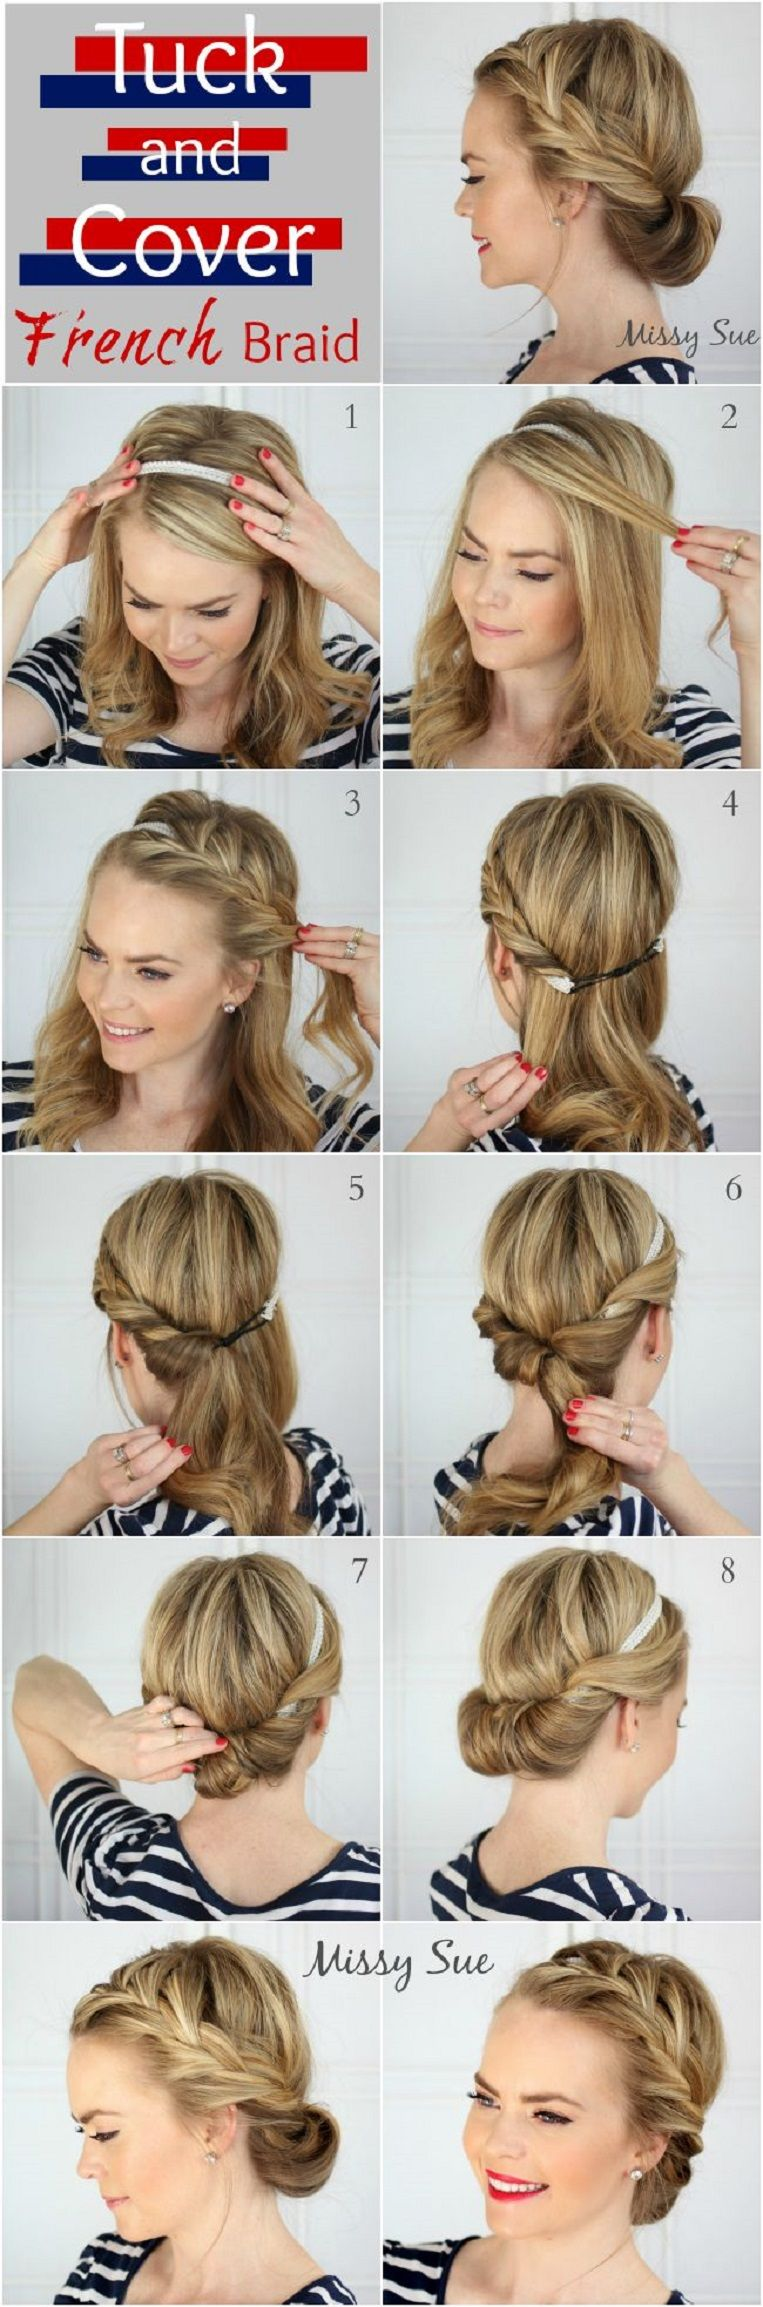 easy hairstyles for bangs to get them out of your face updo